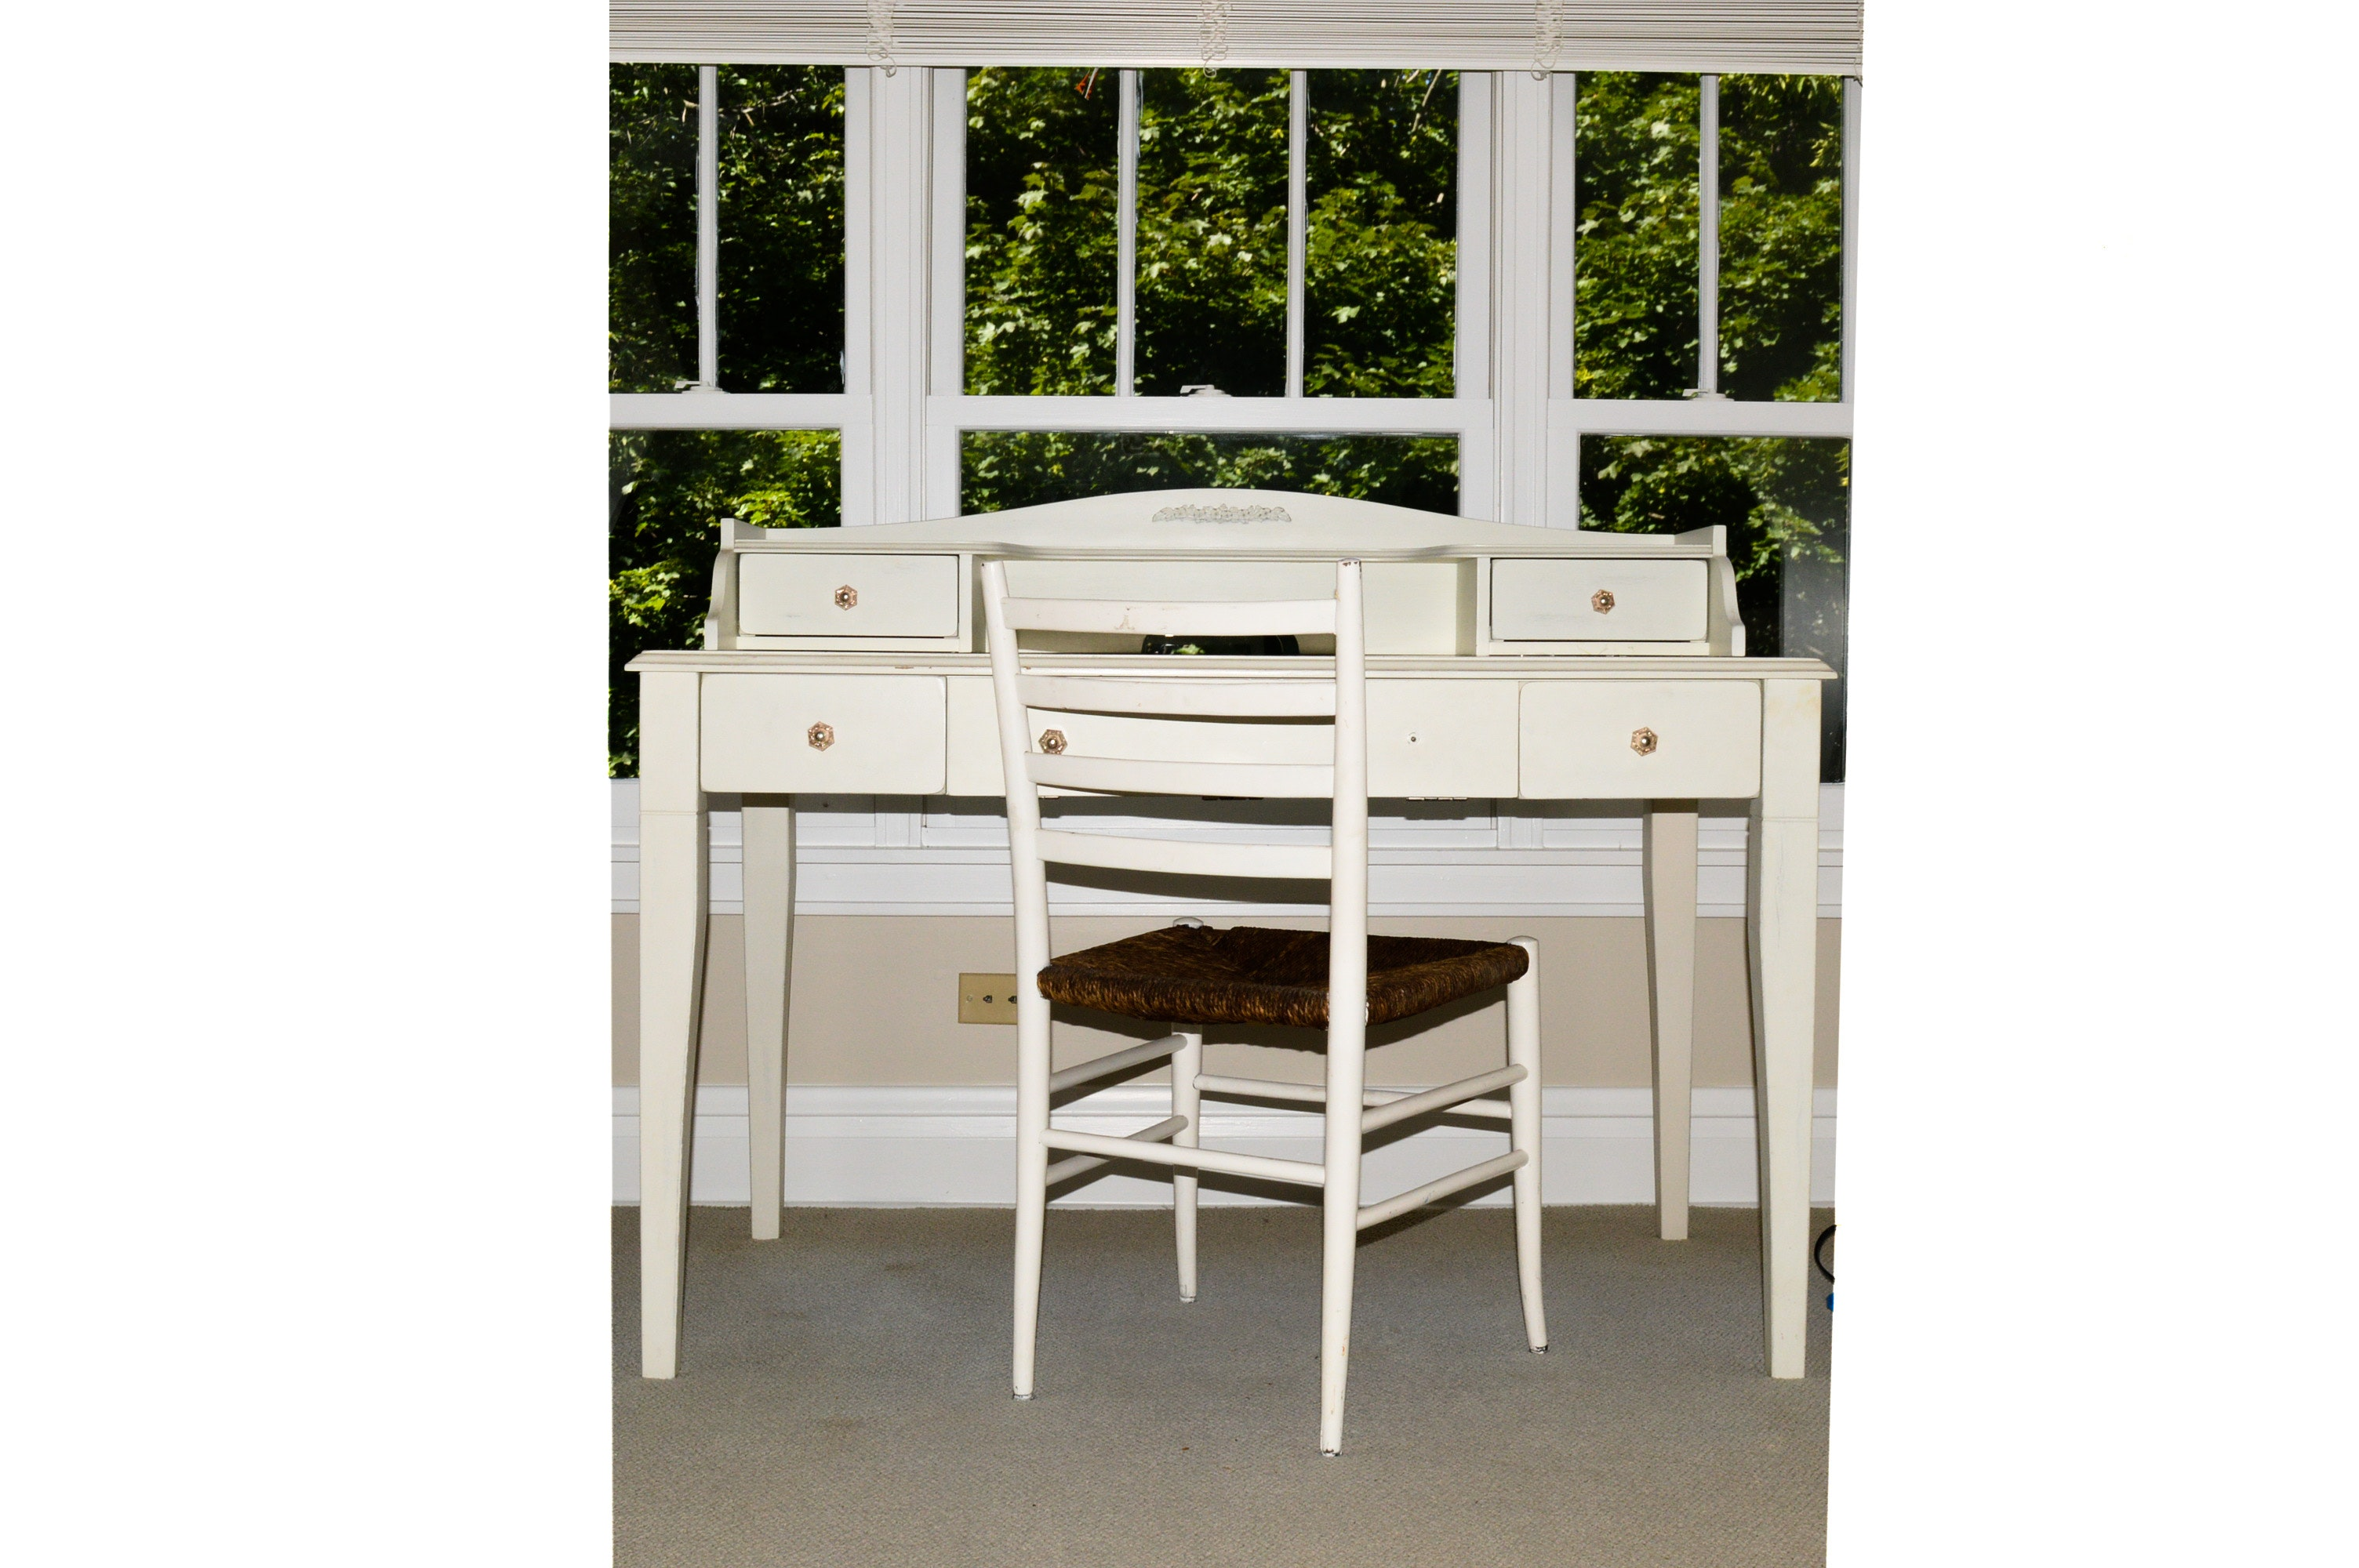 Pottery Barn Kids White-Painted Desk With Chair